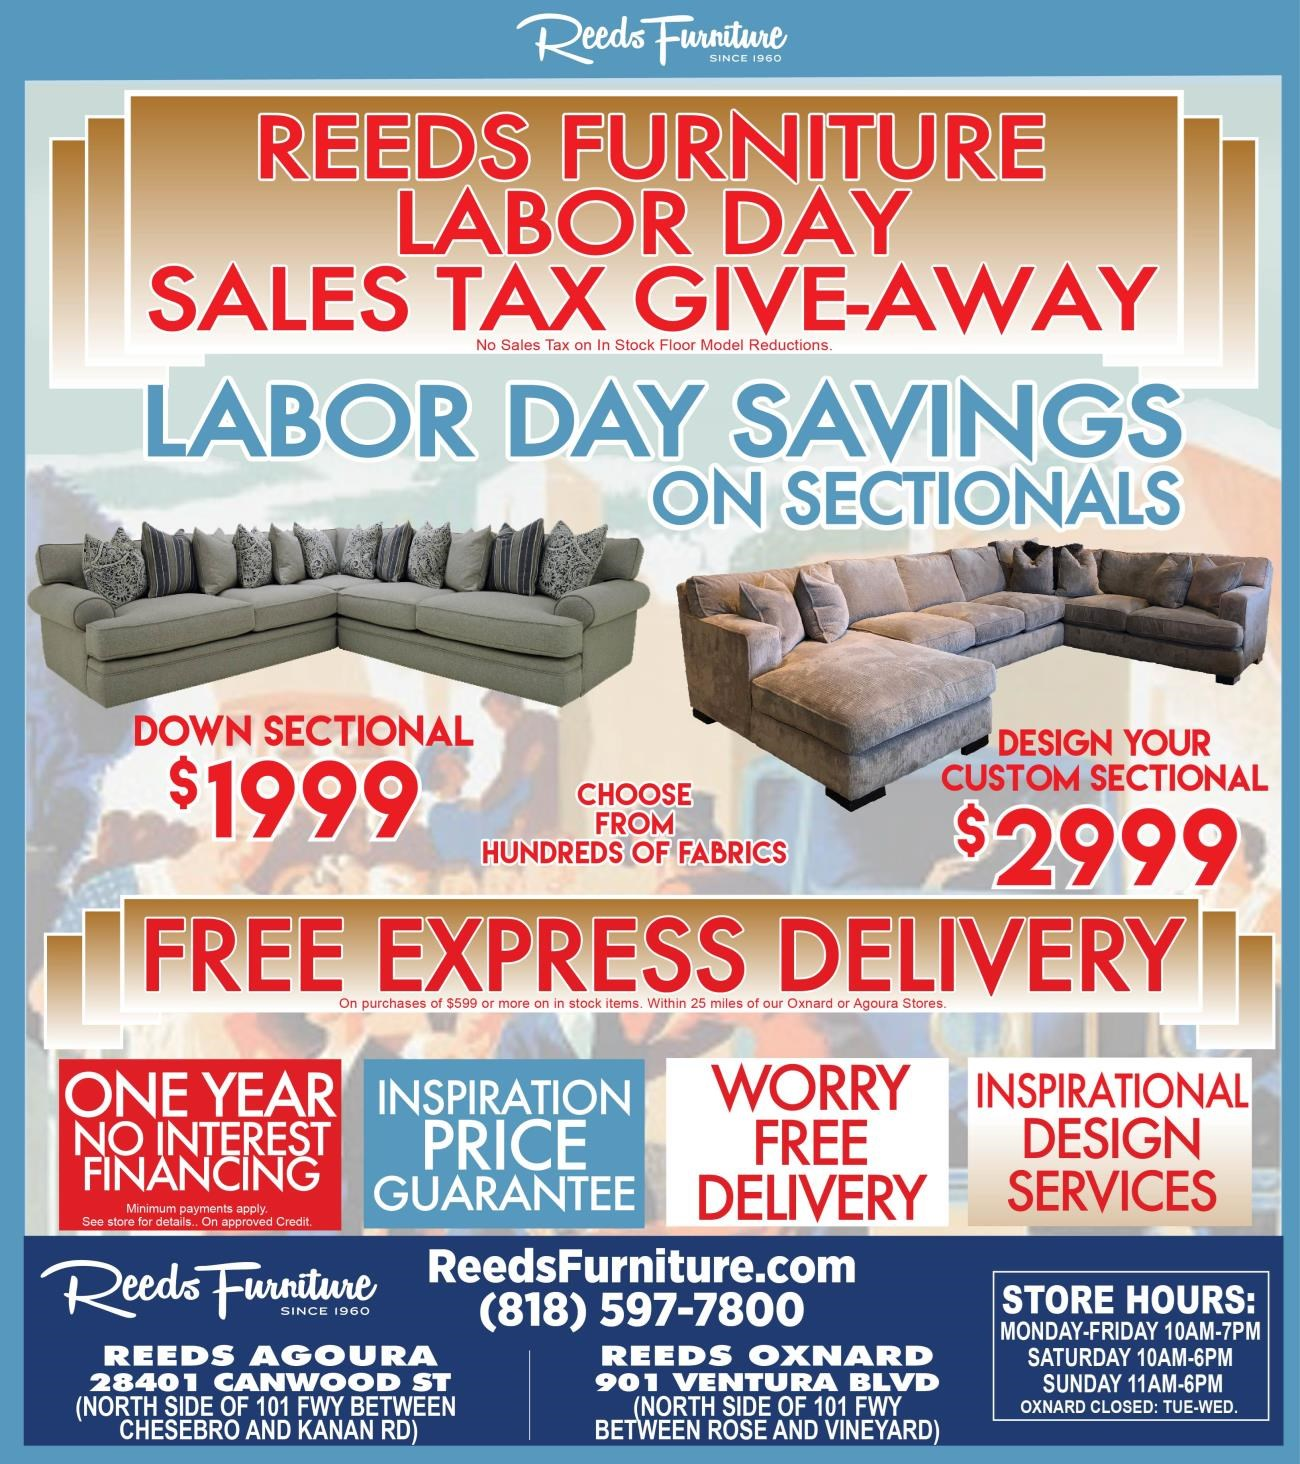 Current Promotions At Reeds Furniture: